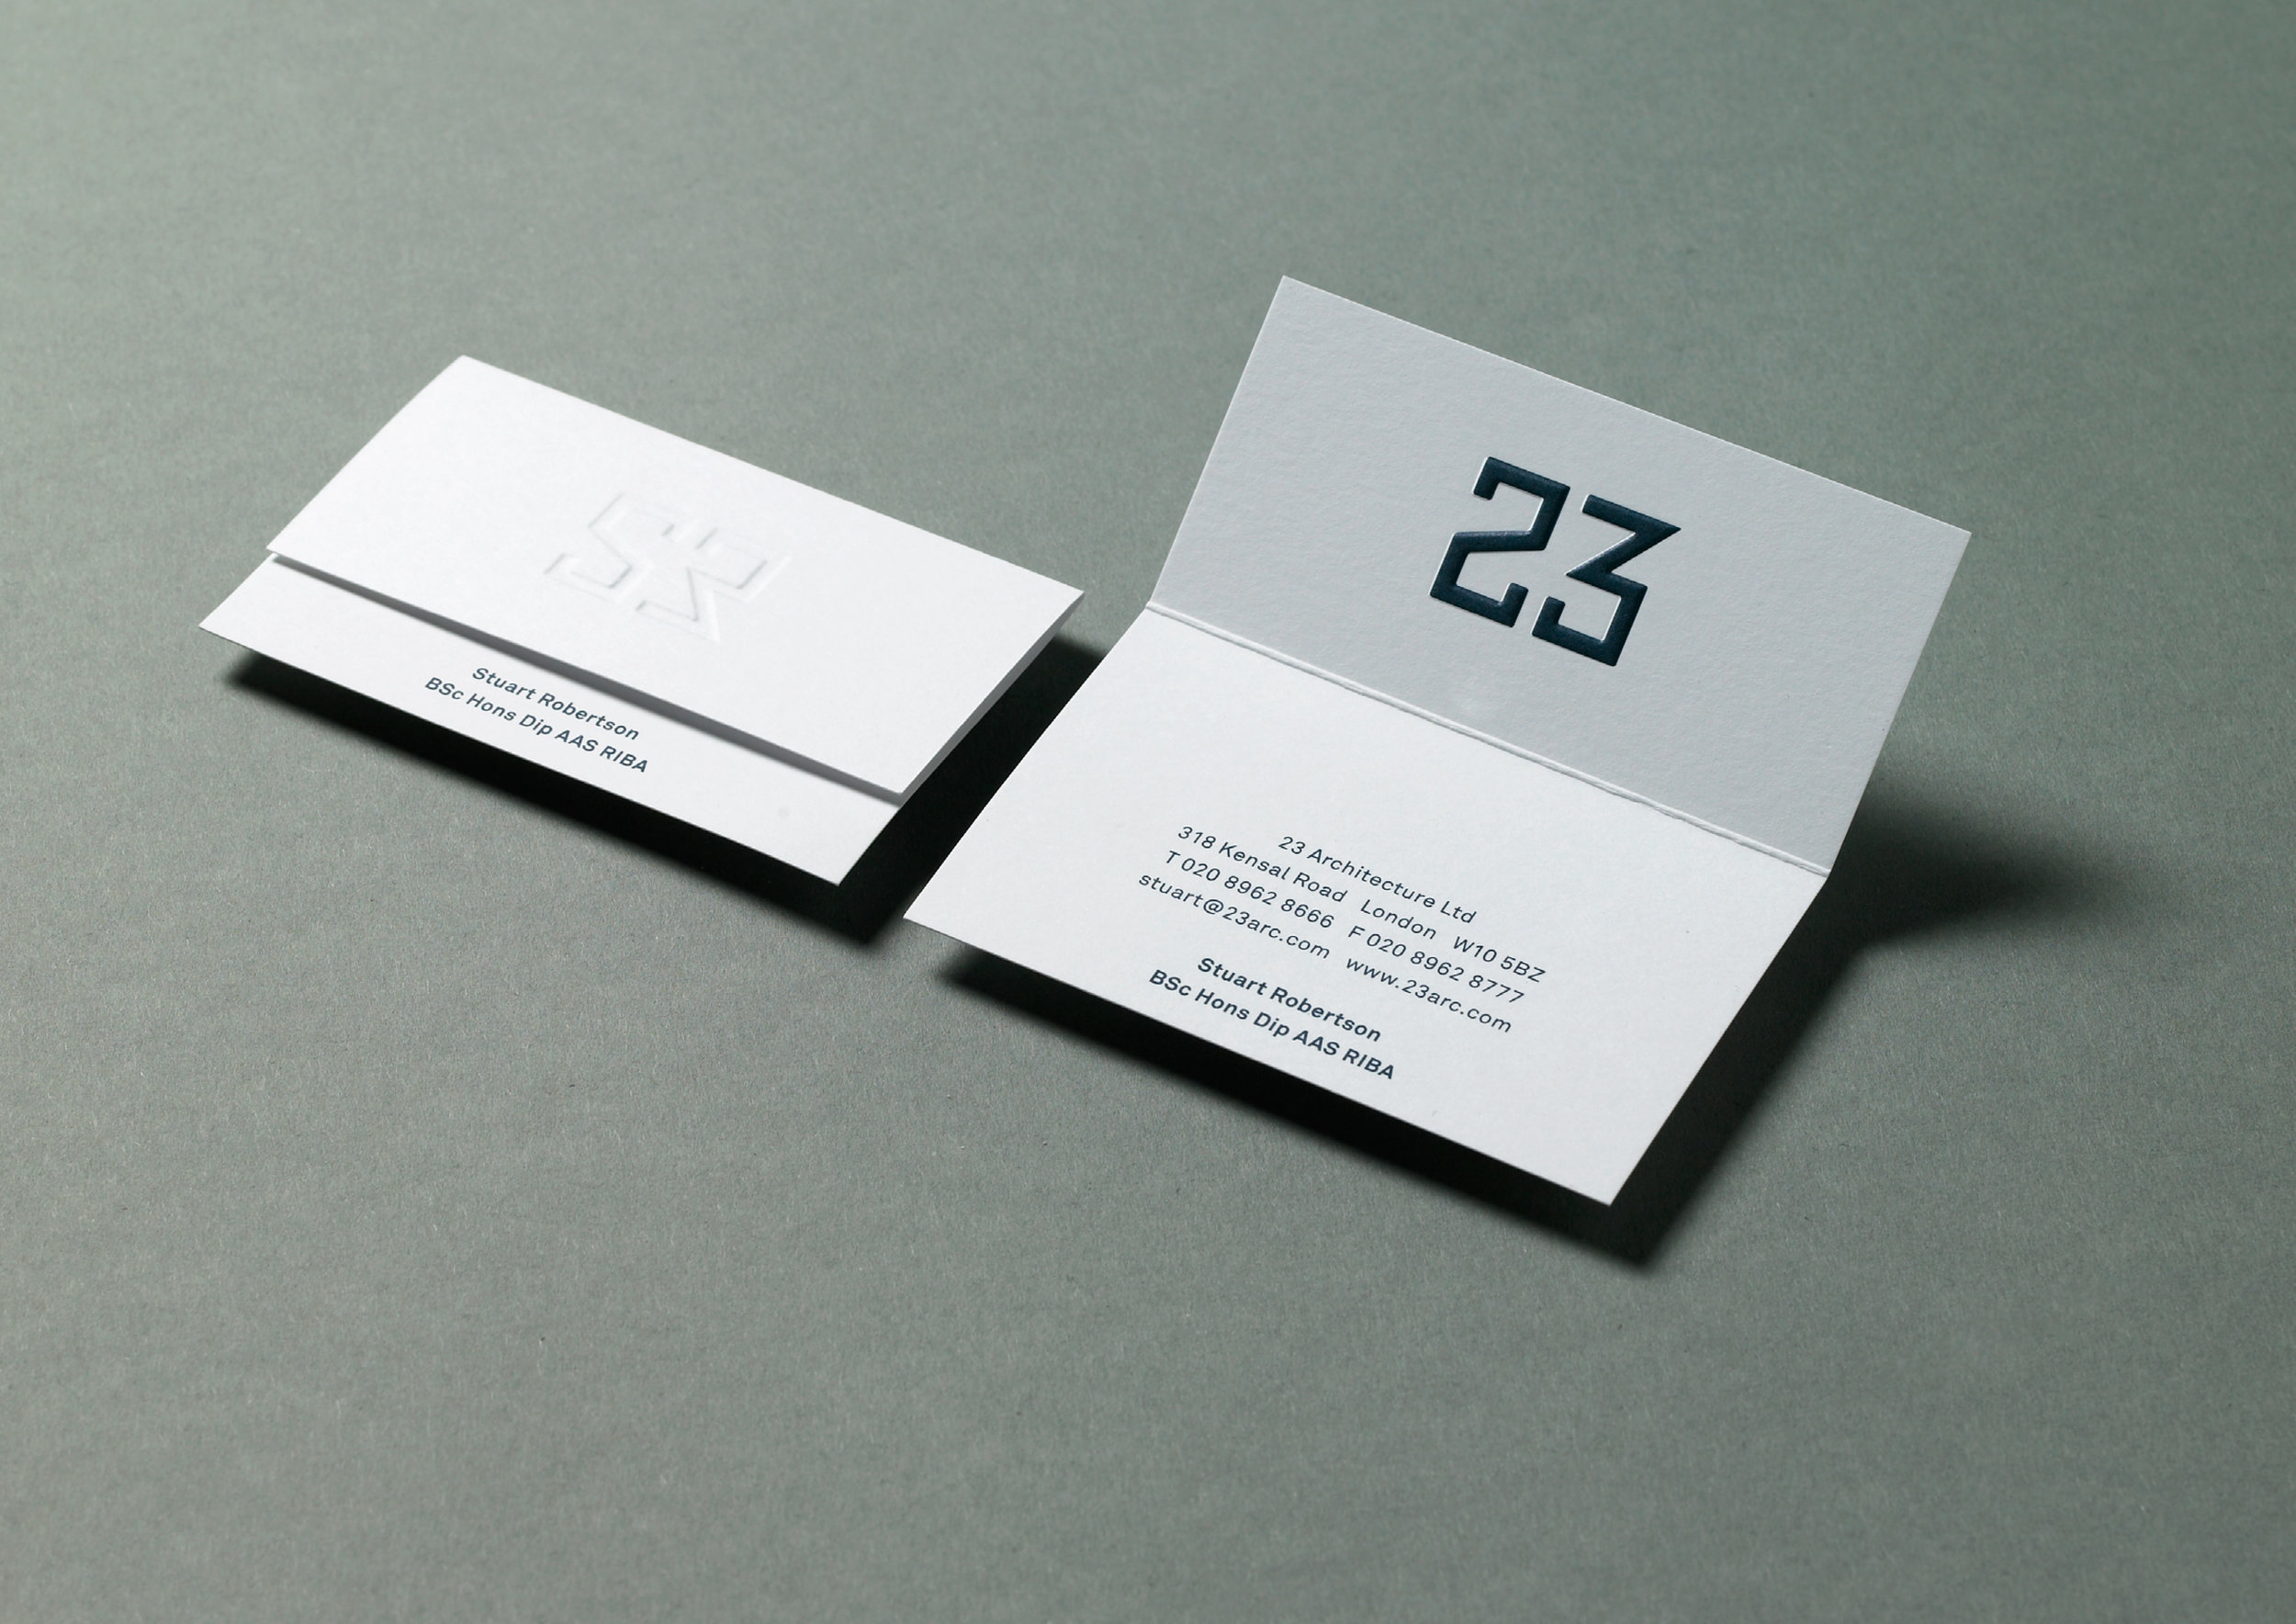 23 Architects - Visual Identity for 23 Architects using the initials of founder Stuart Robertson. The logo is a play on the founders initials as well as the company name.